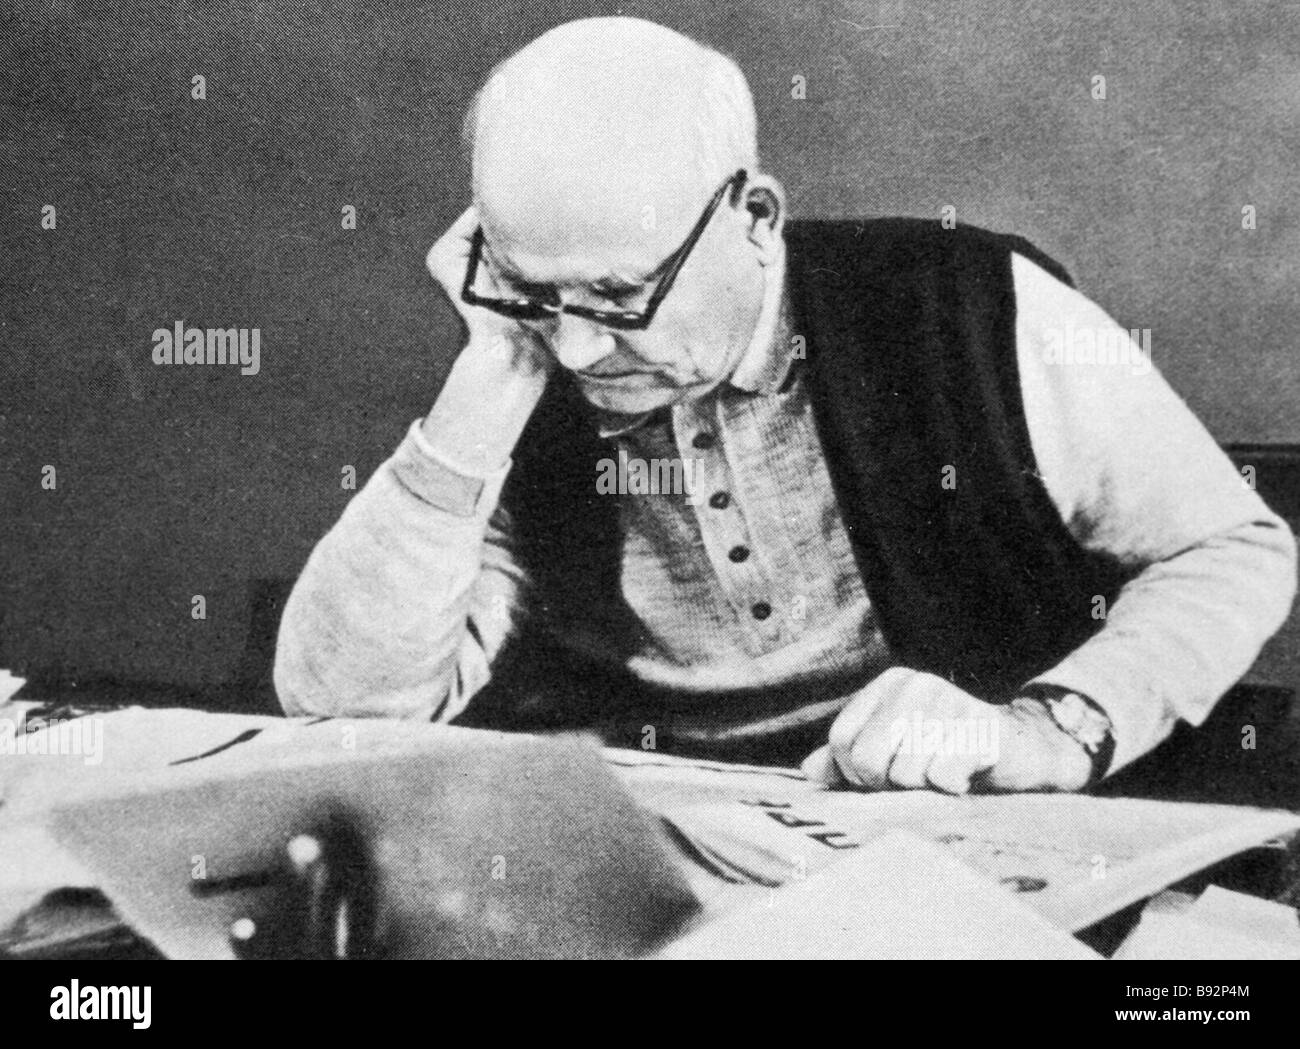 Two time Hero of the Soviet Union Marshal Ivan Konev at his desk - Stock Image